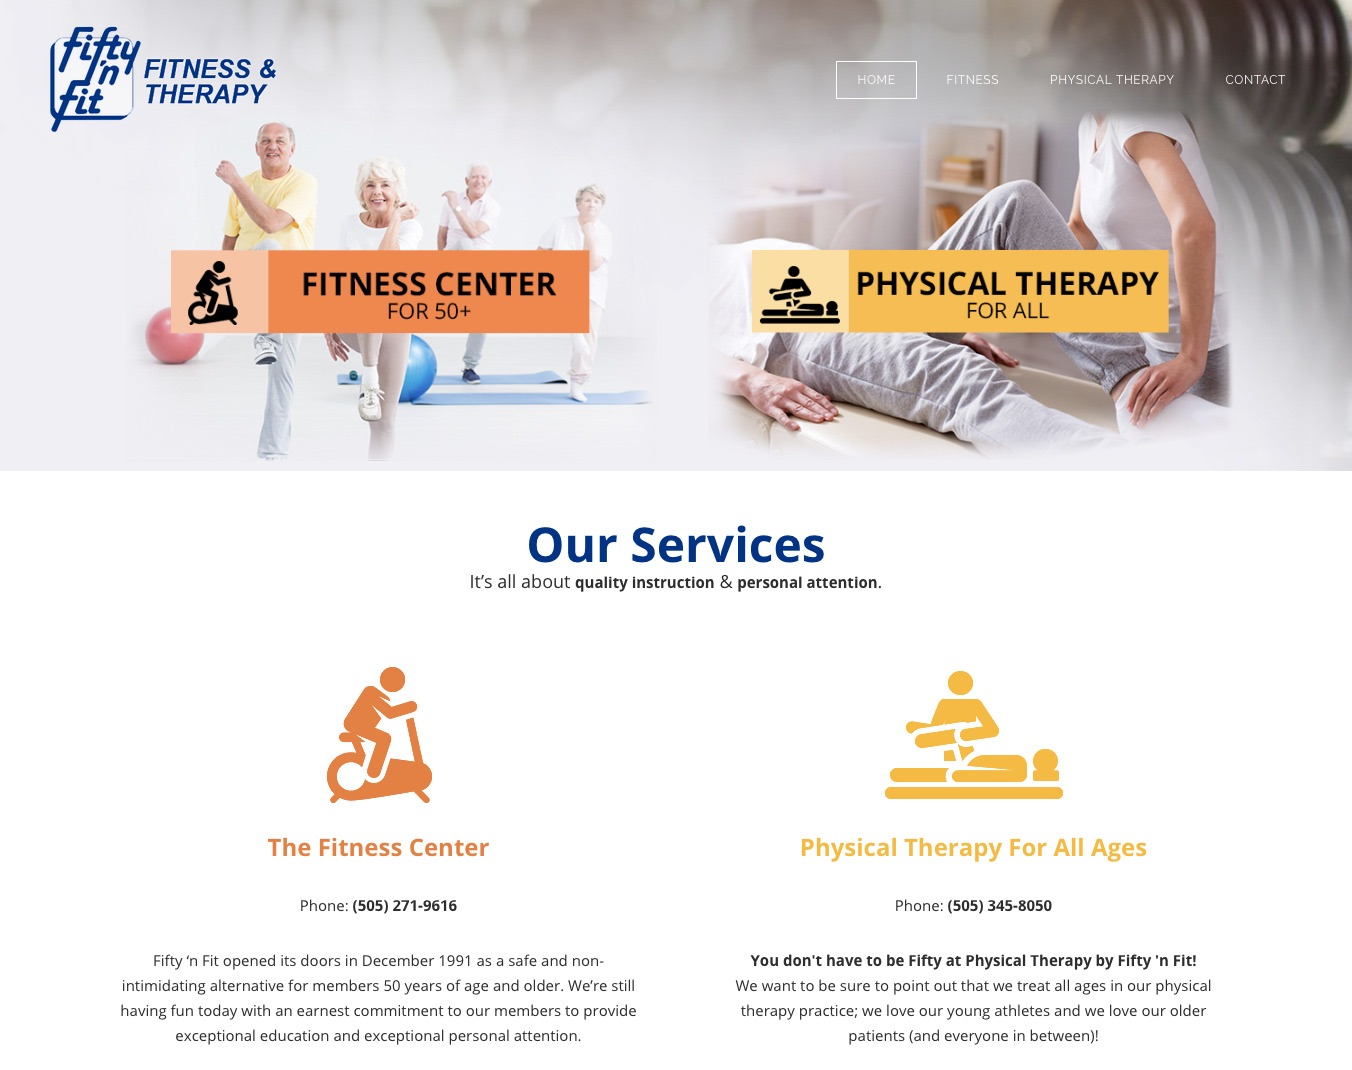 Fifty 'n Fit — Fitness Center for 50+, Physical Therapy for all ages